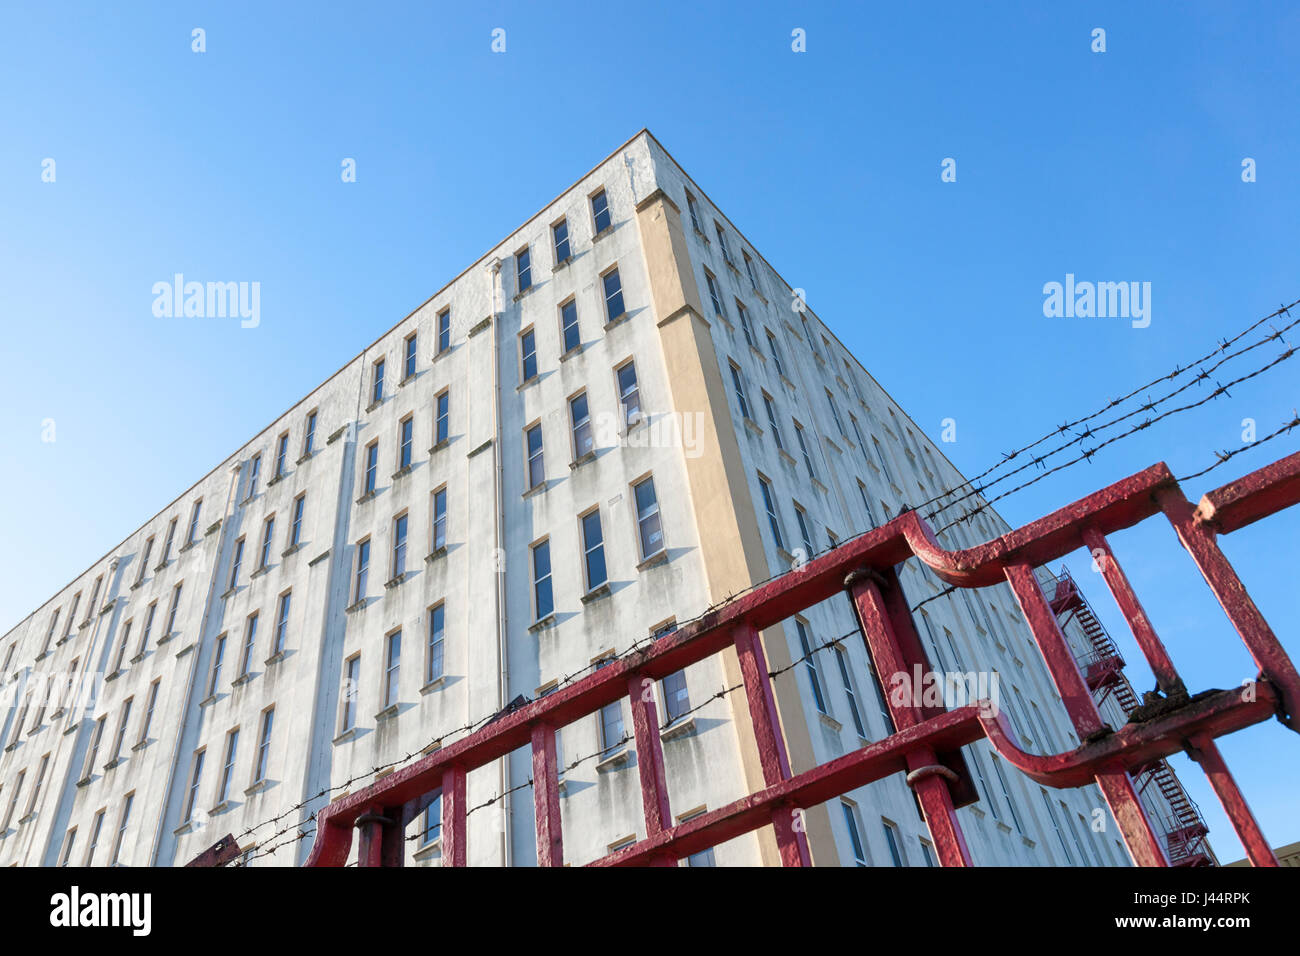 Security fence around a building - Stock Image